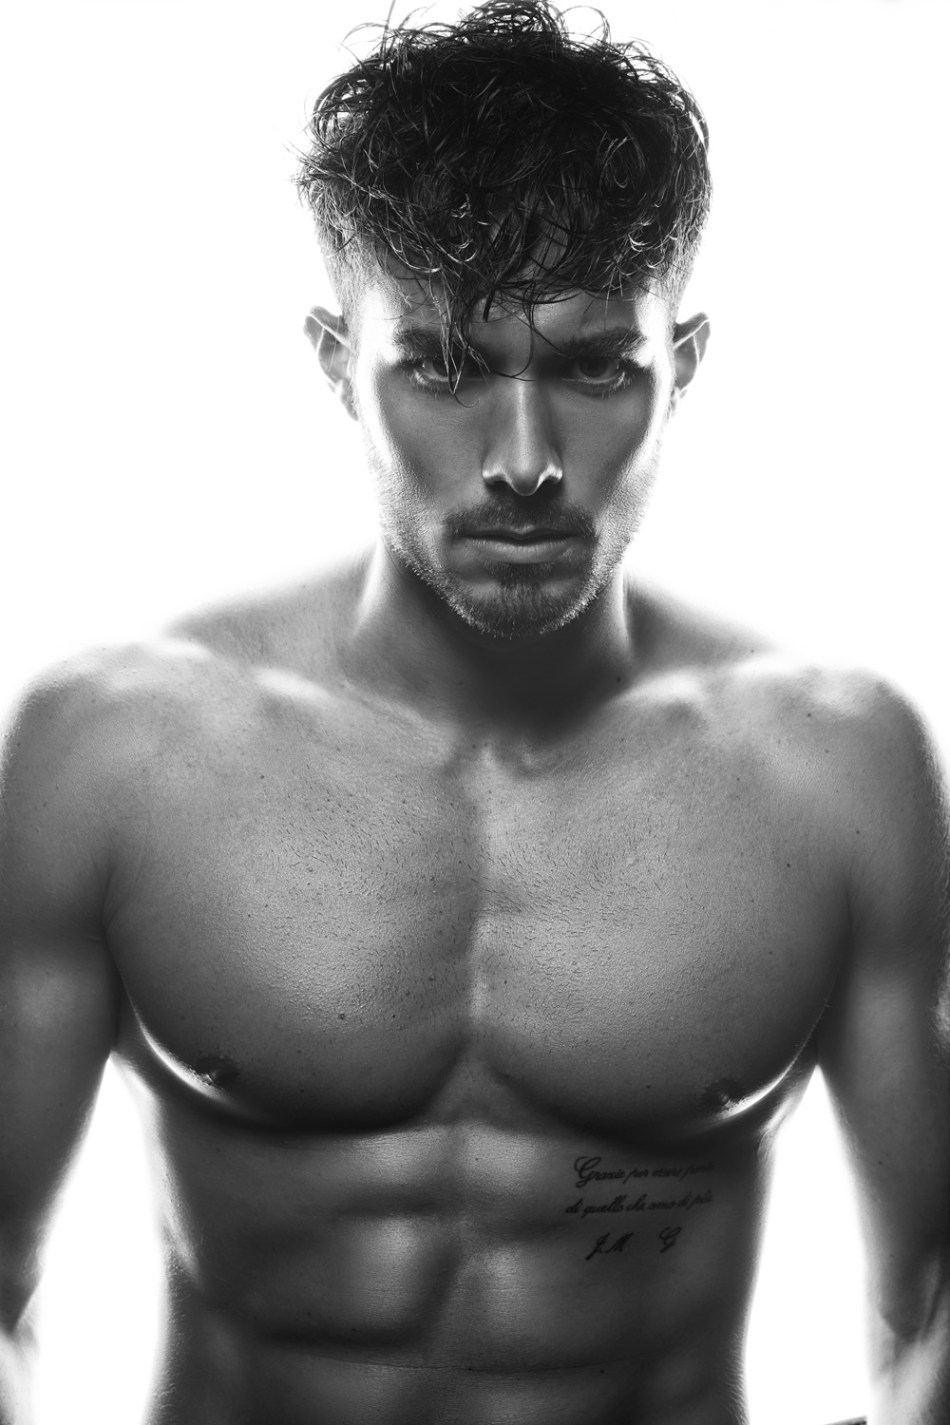 Dashing Spanish fresh face Rubén Rodriguez builds up his model book with an eye-catching new session by photographers Ruben Ibañez and Daniel Oury aka f4ever.es